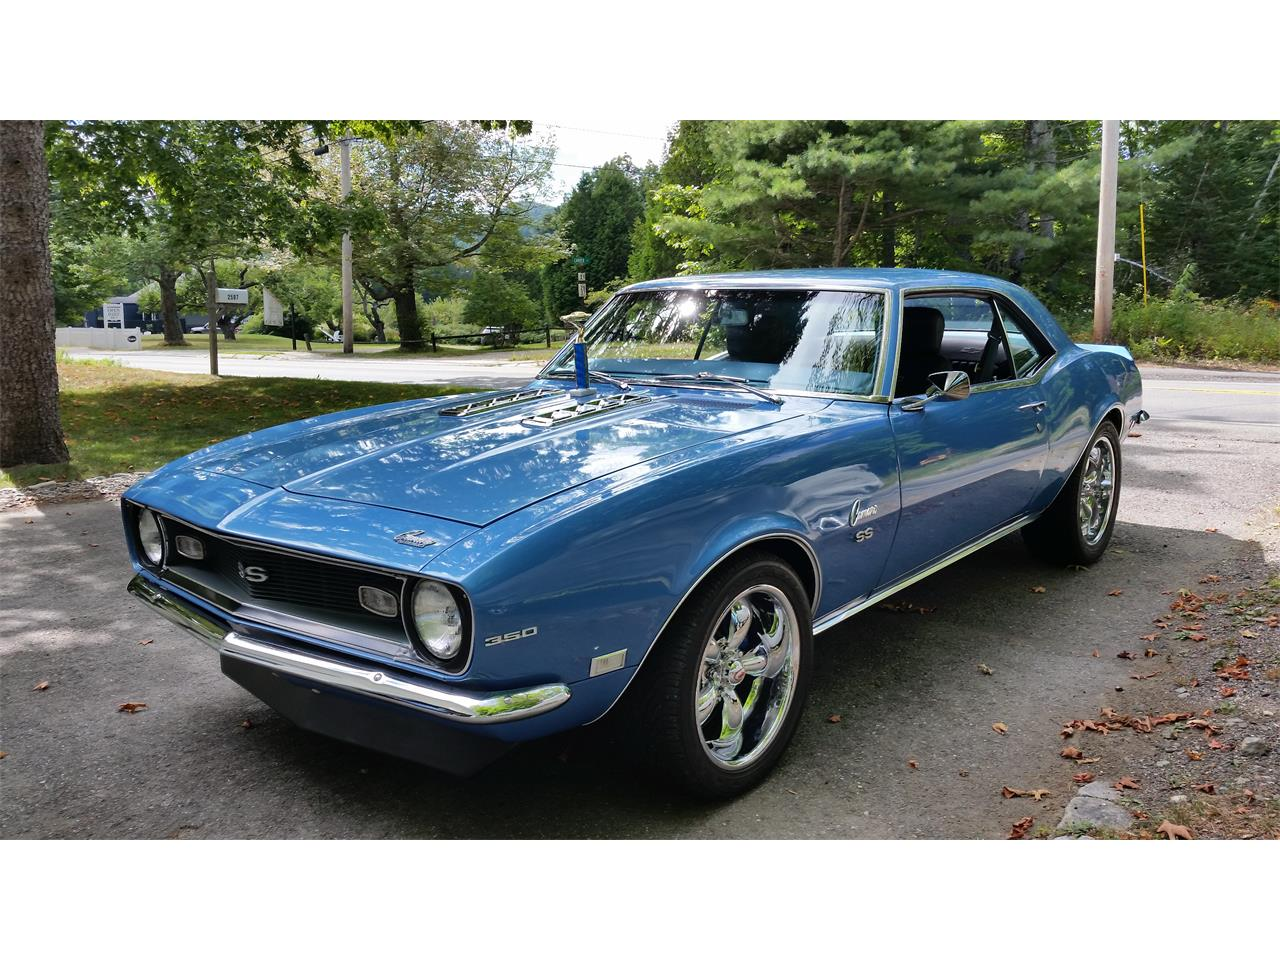 Large Picture of 1968 Chevrolet Camaro located in Maine - $41,500.00 Offered by a Private Seller - QP8T